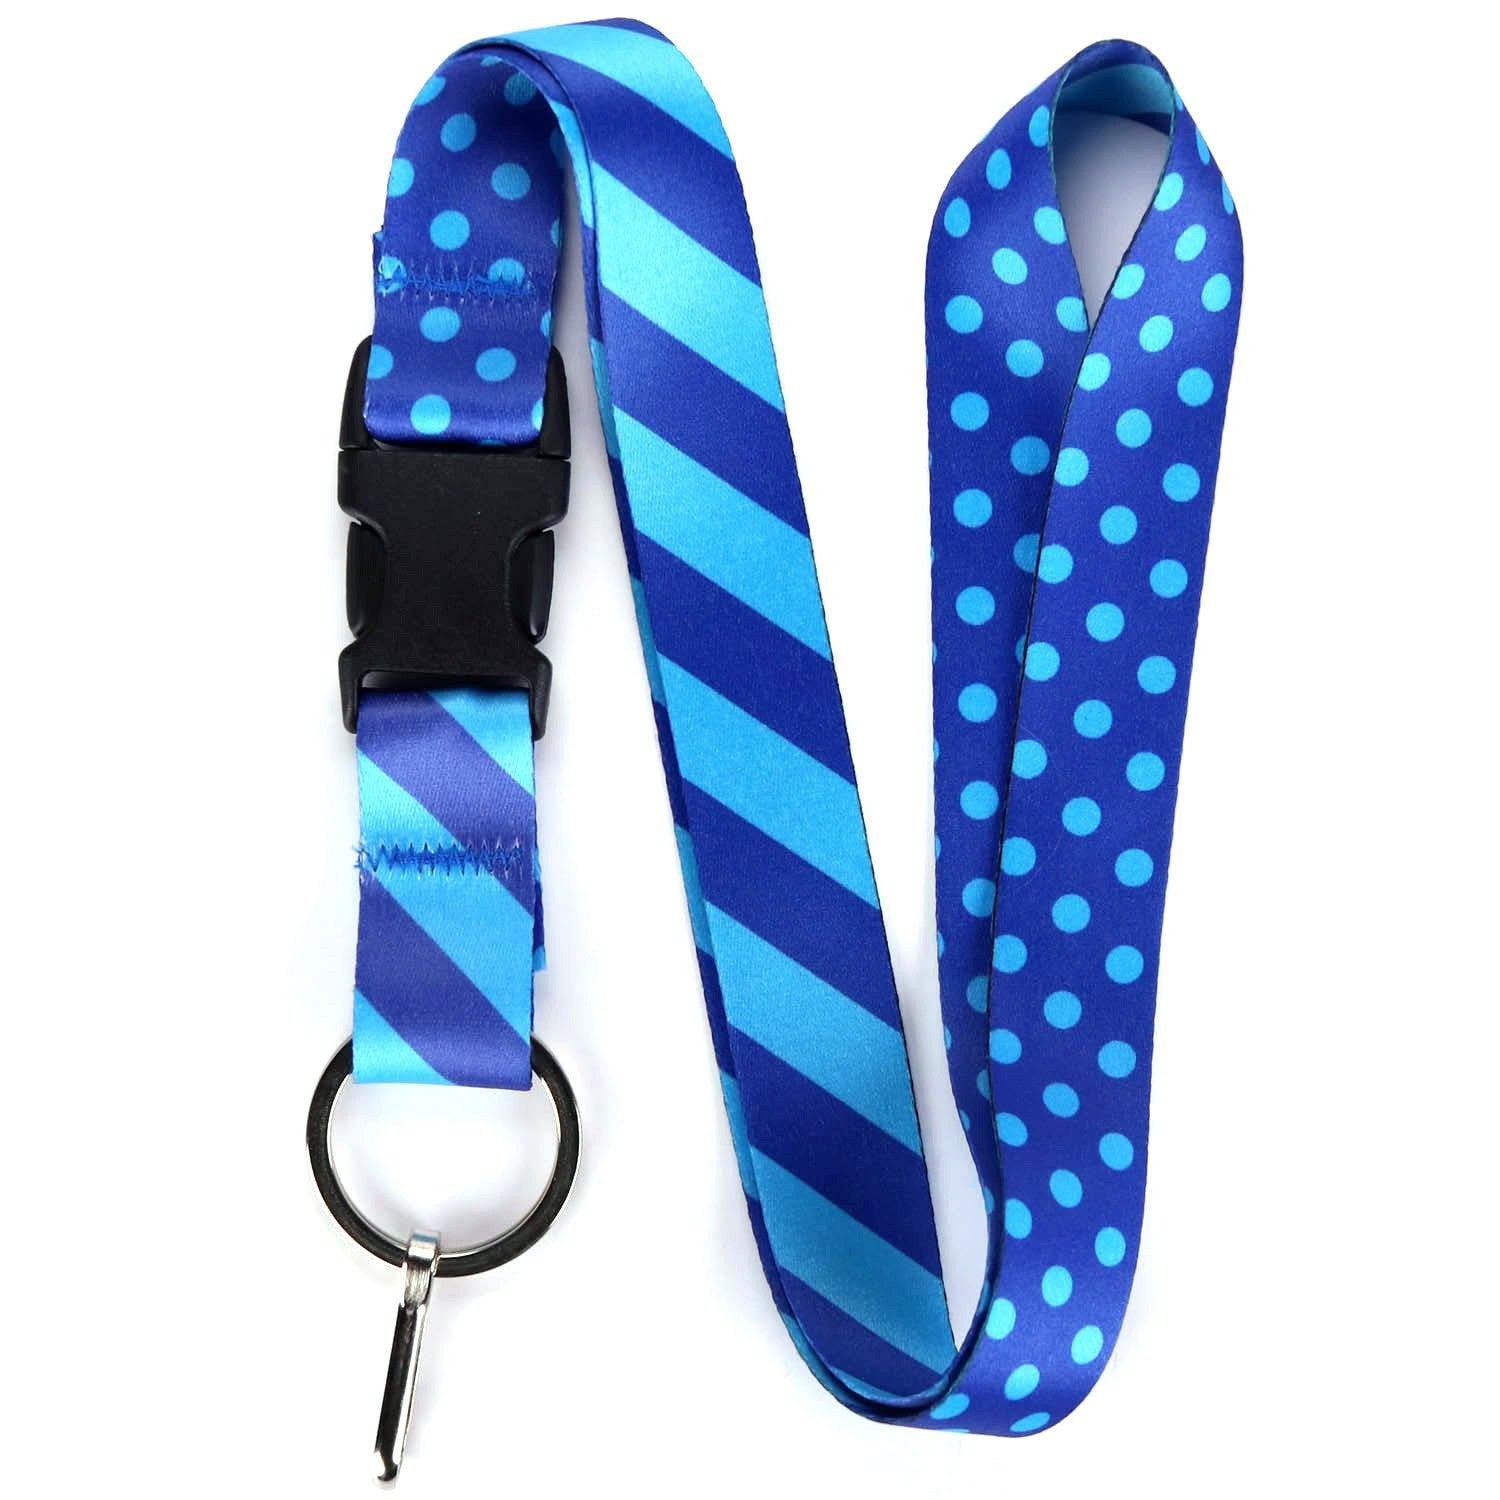 Buttonsmith Blue Dots Lanyard - Made in USA